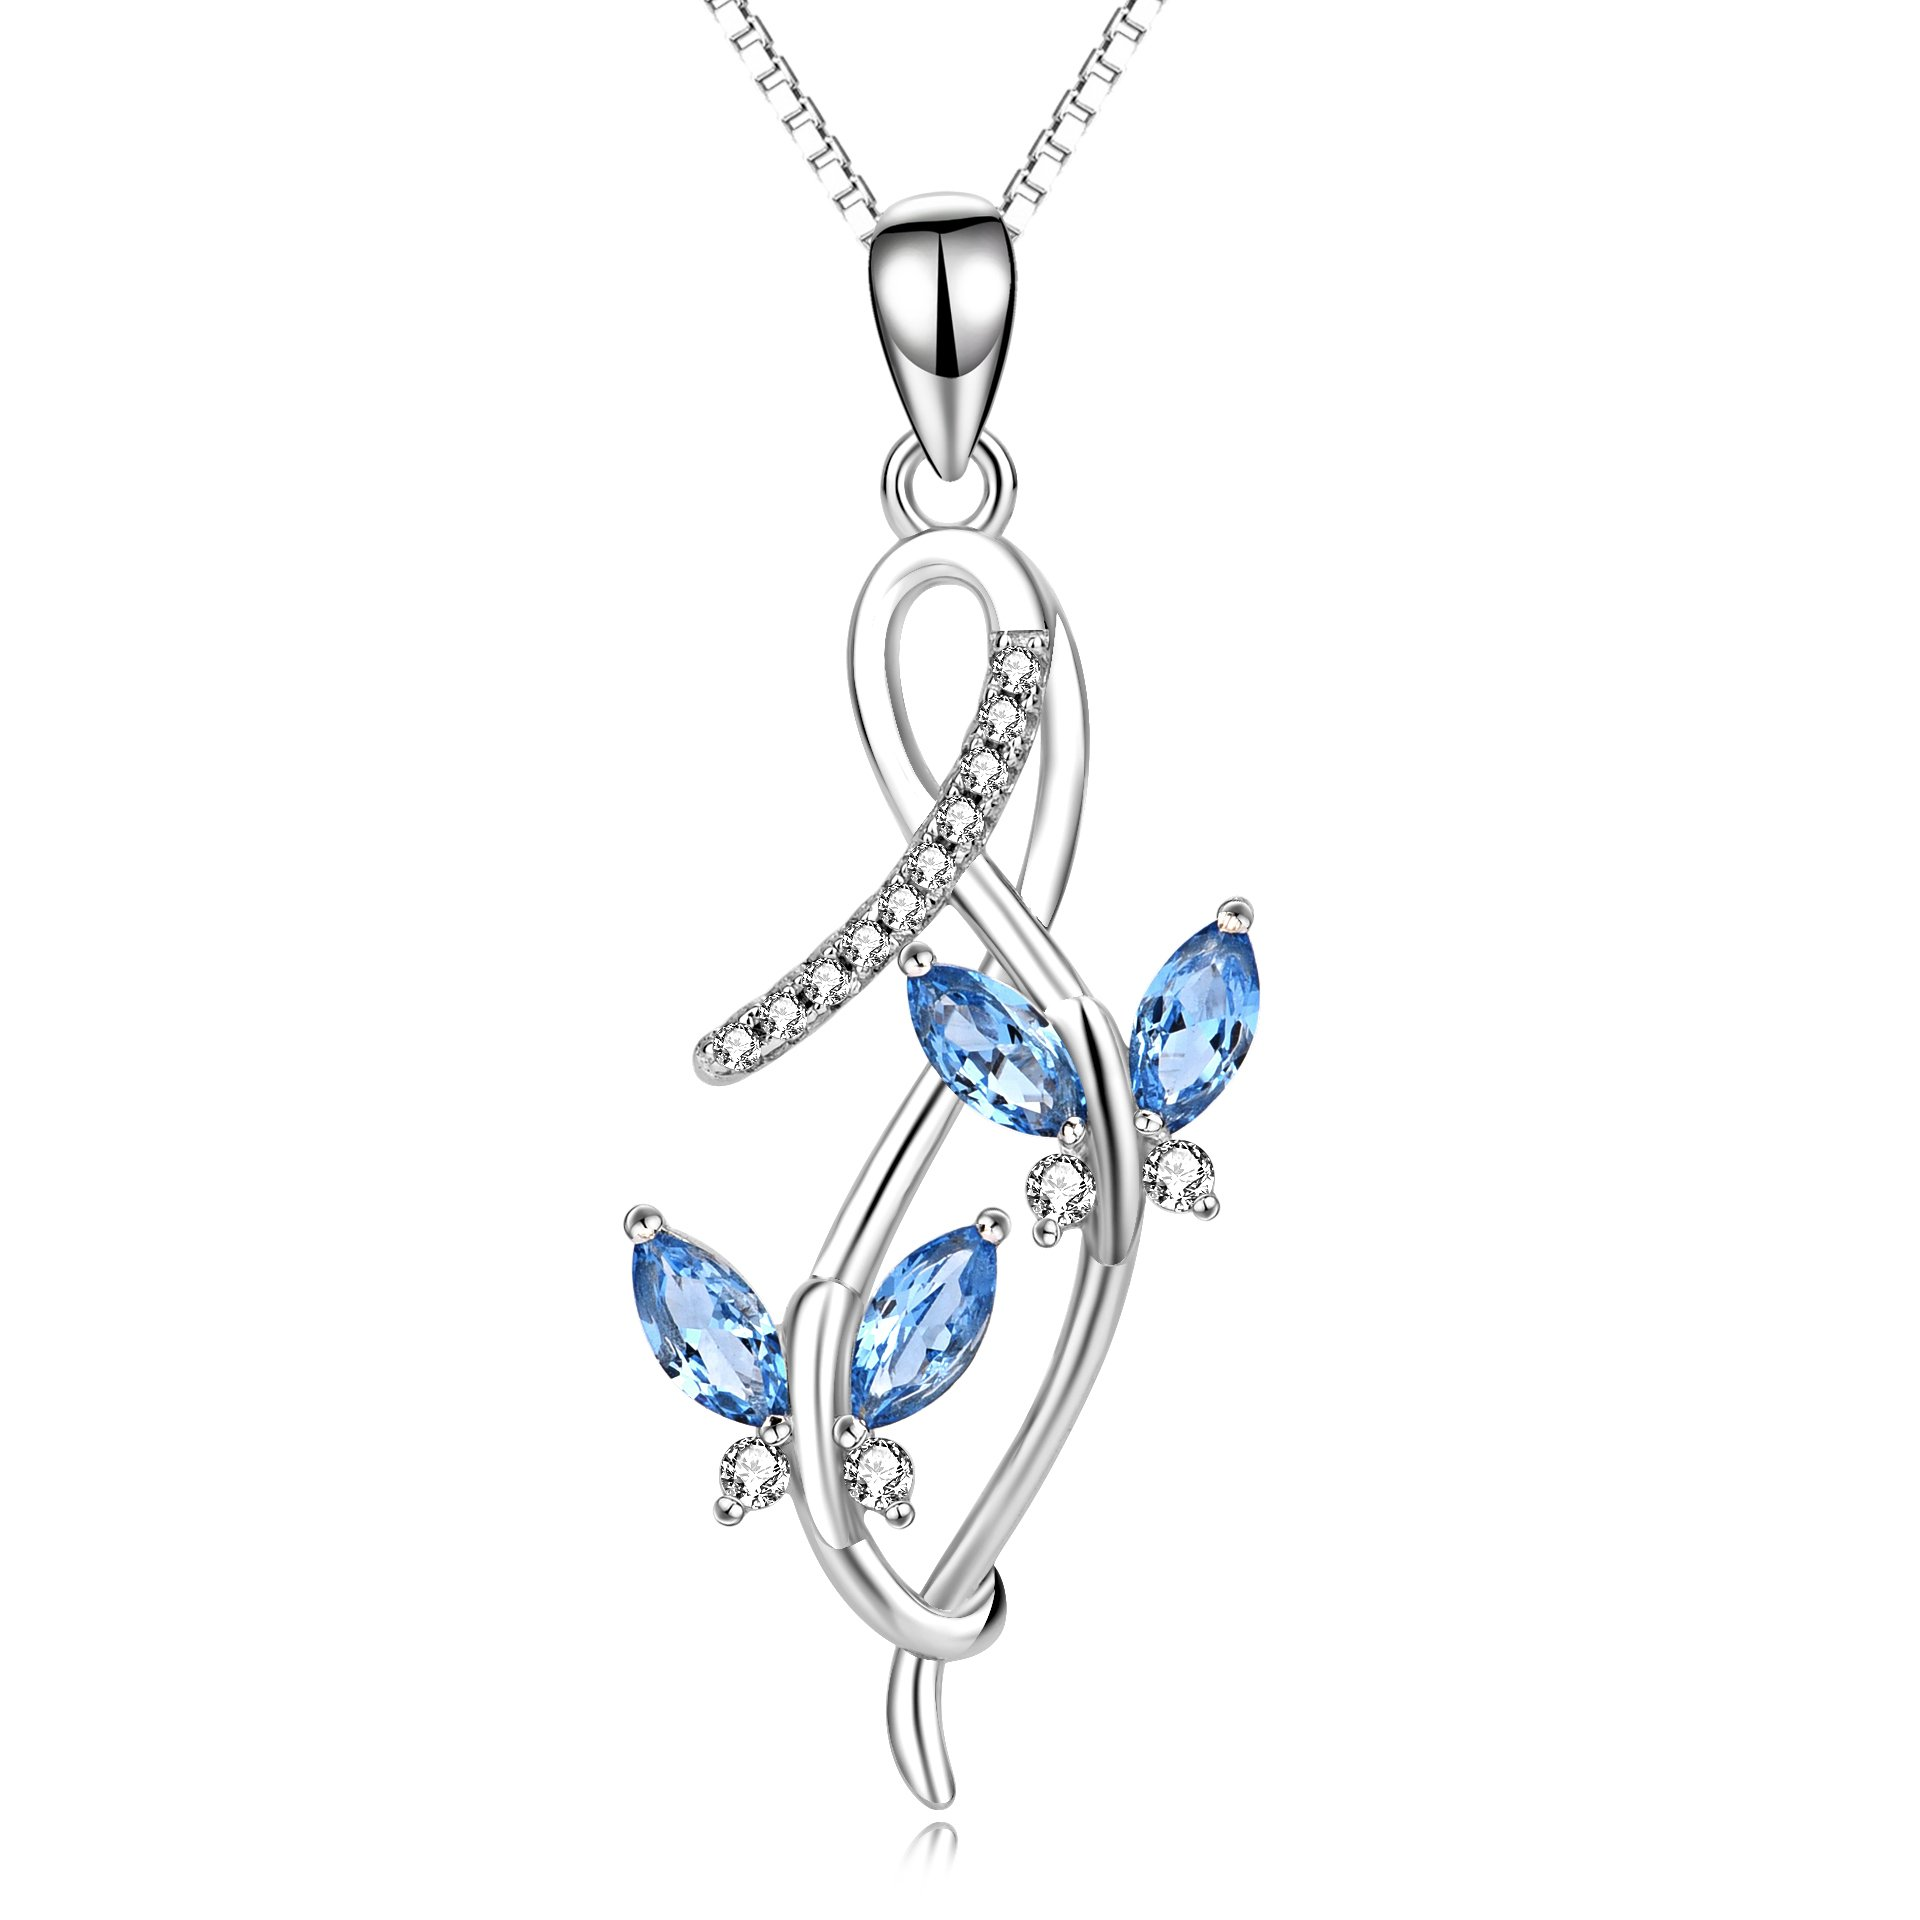 AOBOCO Sterling Silver Infinity Butterfly Pendant Necklace Fine Jewelry Anniversary Birthday Gifts for Women Girls